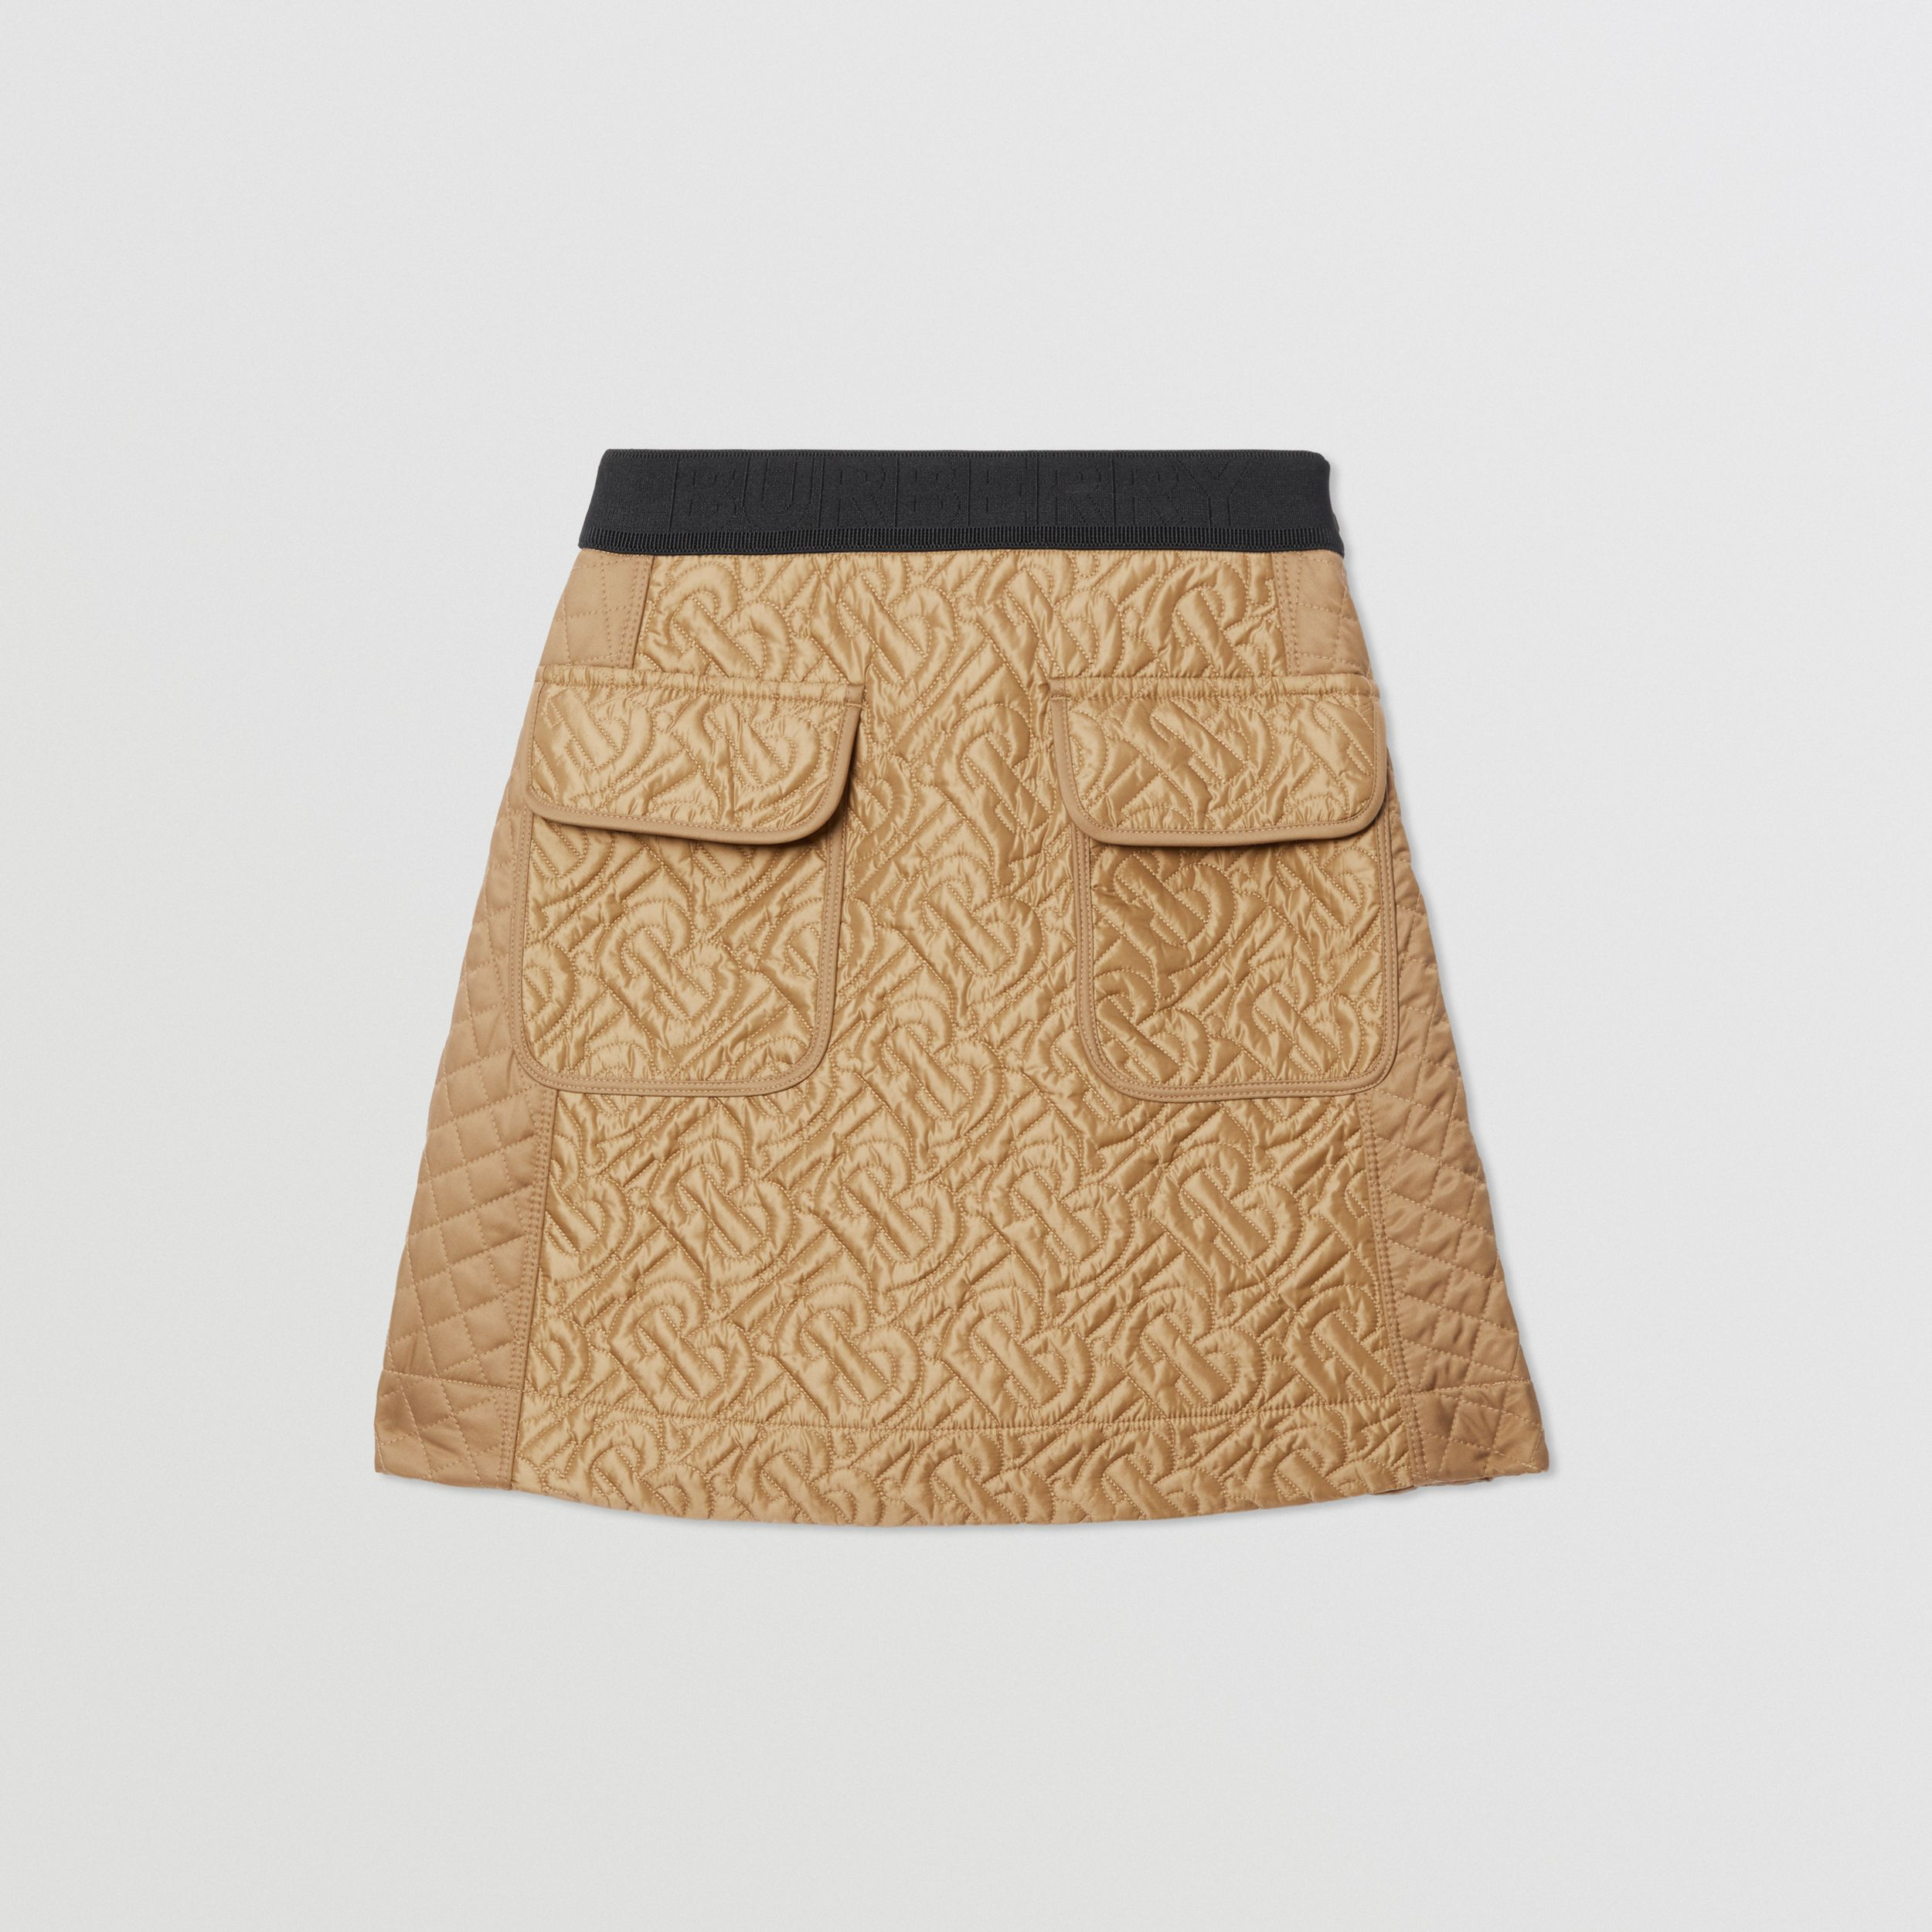 Monogram Quilted Panel Recycled Polyester Skirt in Honey | Burberry Canada - 1